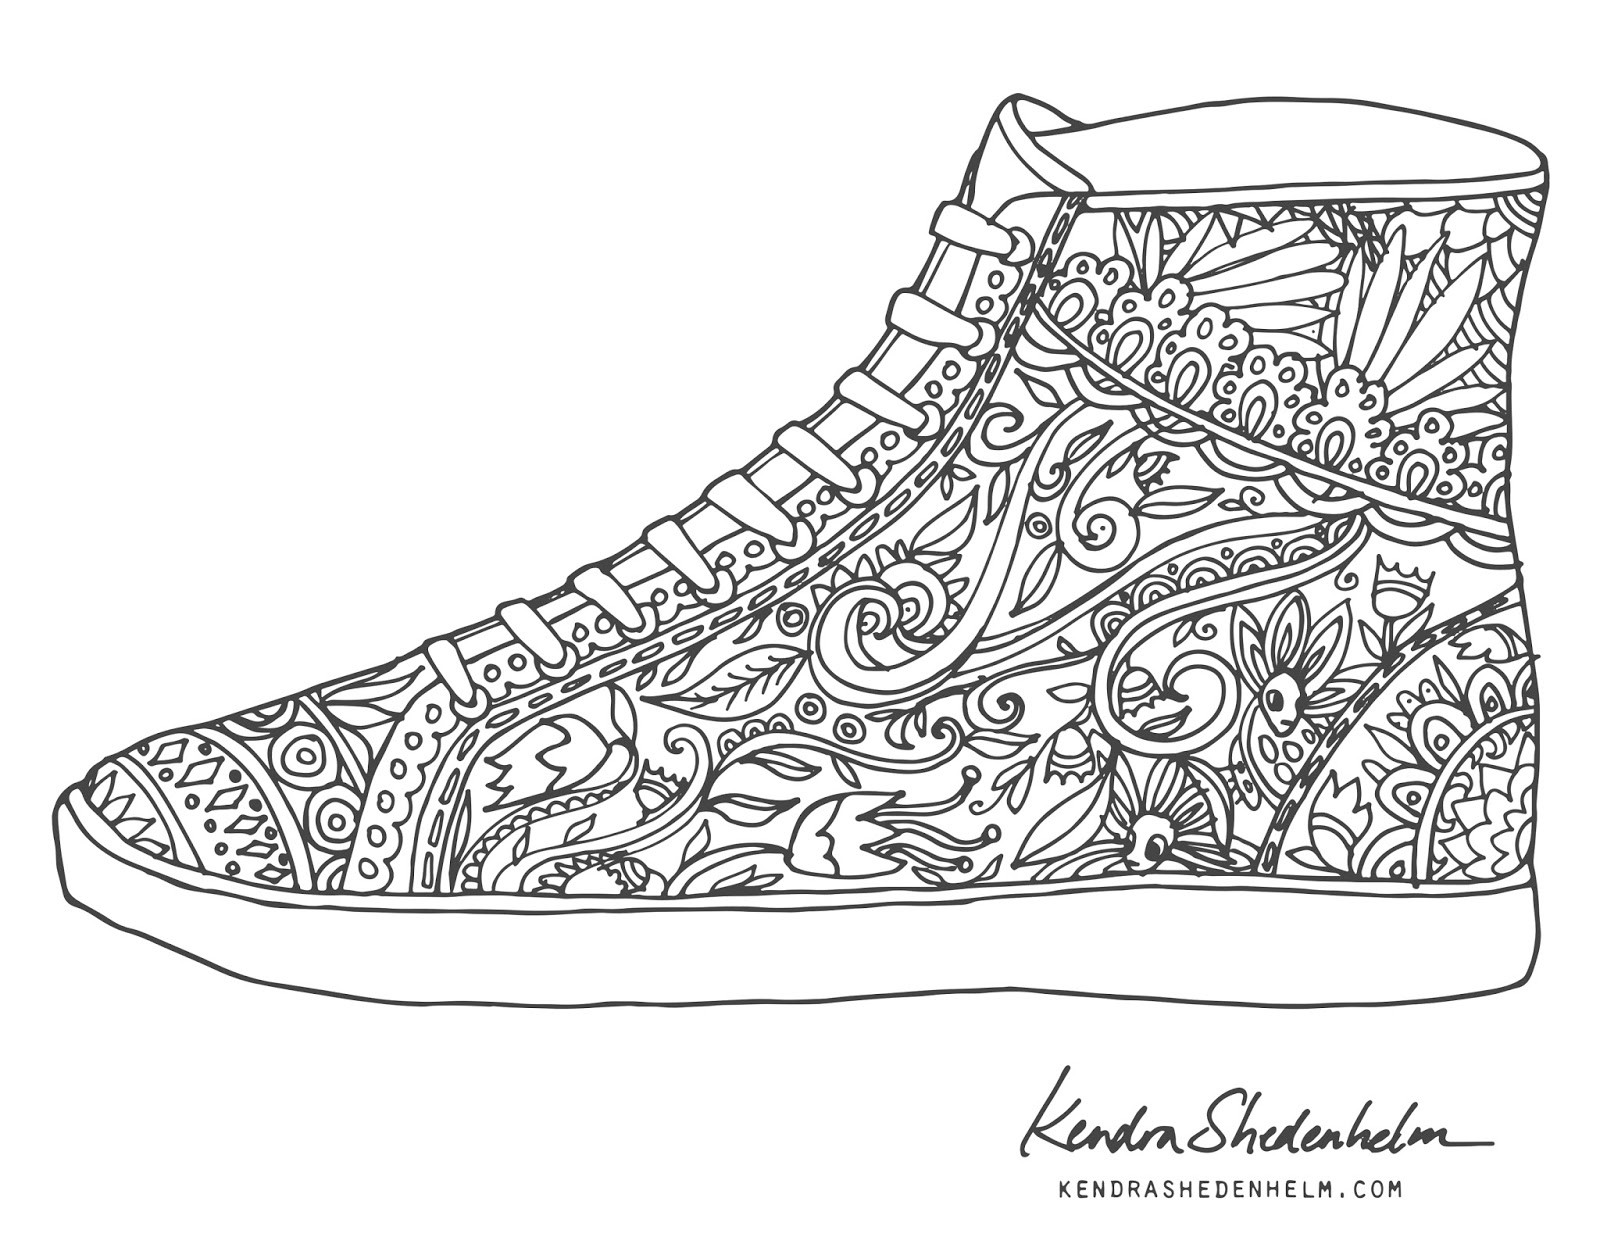 Coloring Pages Of Shoes  Sketchbook by Kendra Shedenhelm Free coloring pages